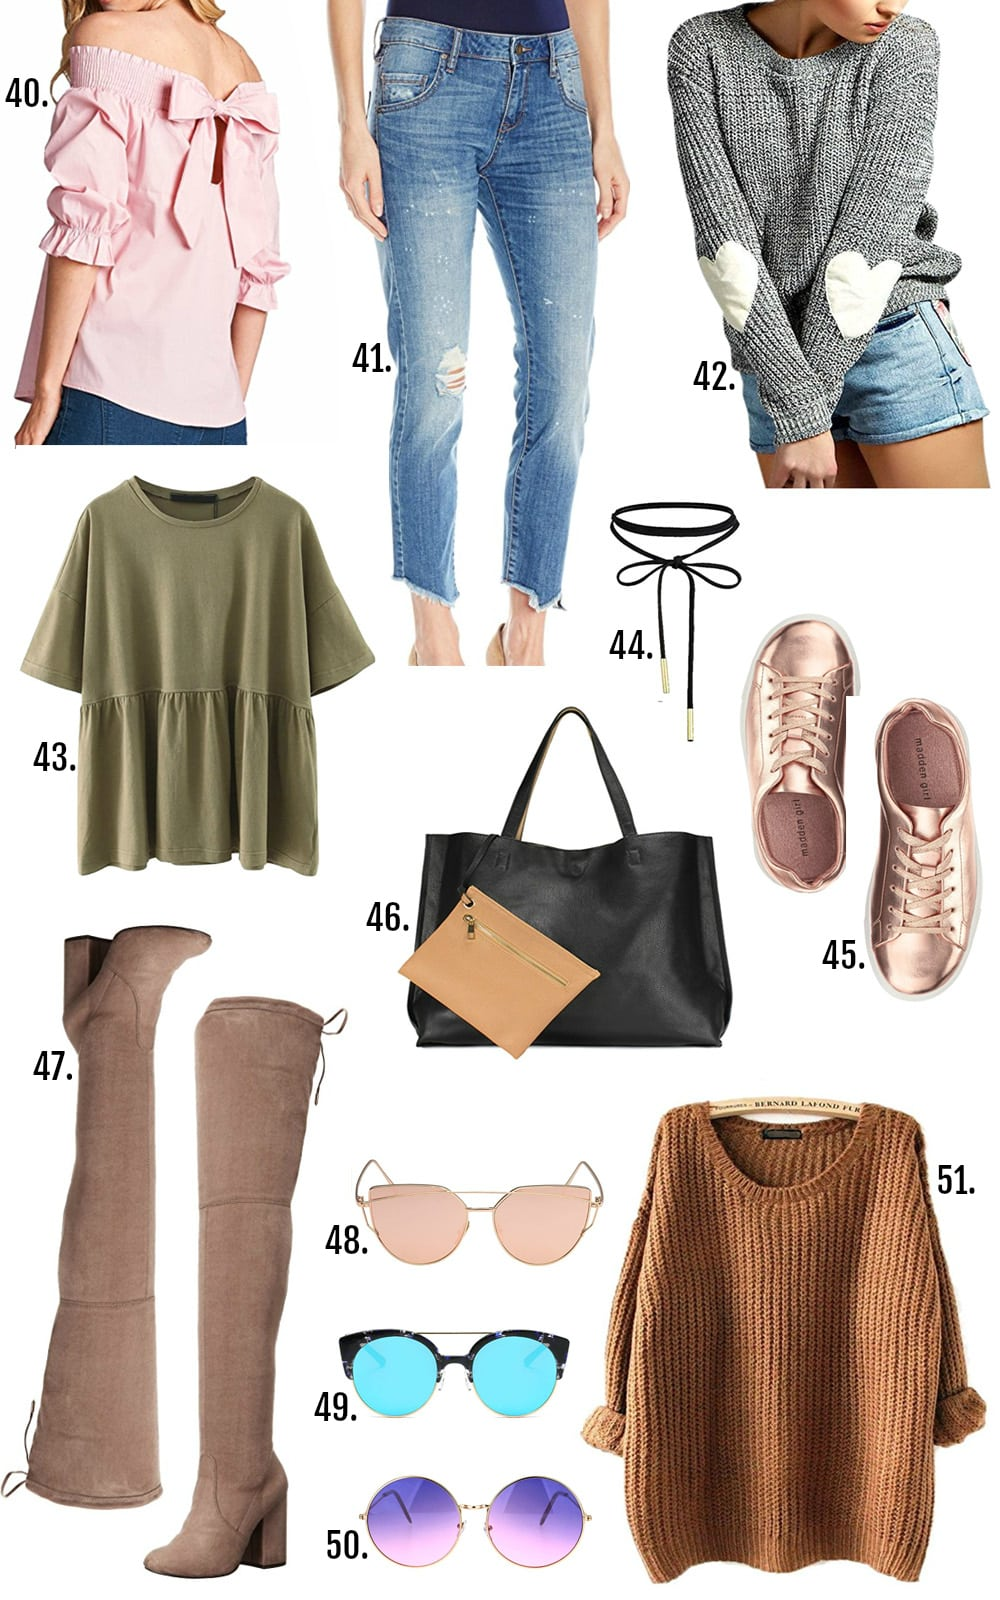 Beauty blogger Mash Elle shares her roundup of affordable spring fashion finds   spring fashion   affordable fashion